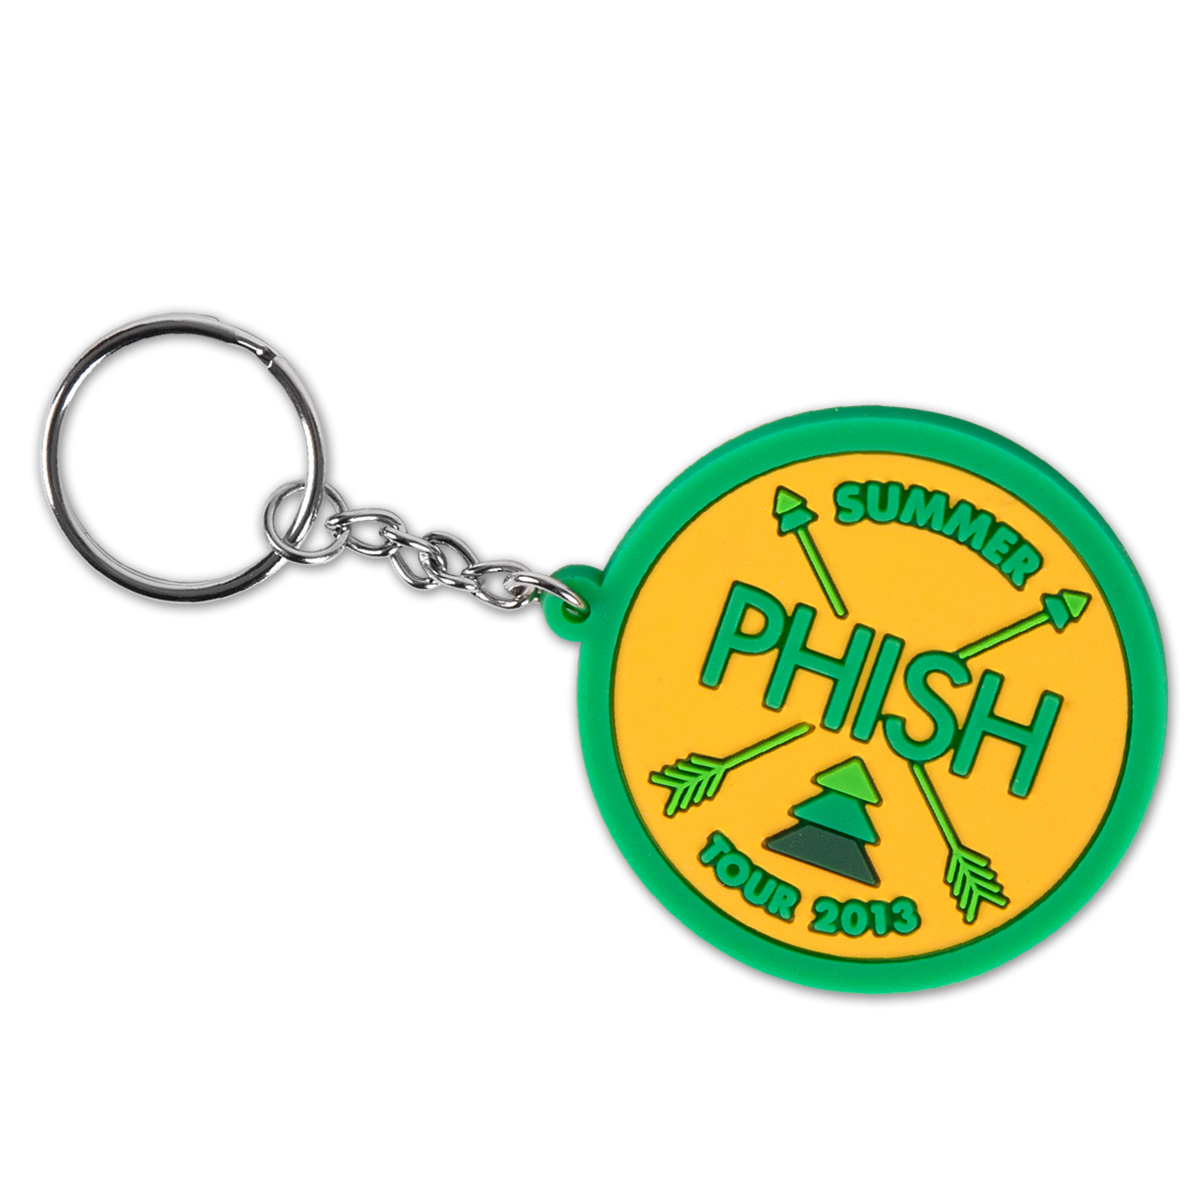 Camp Keychain